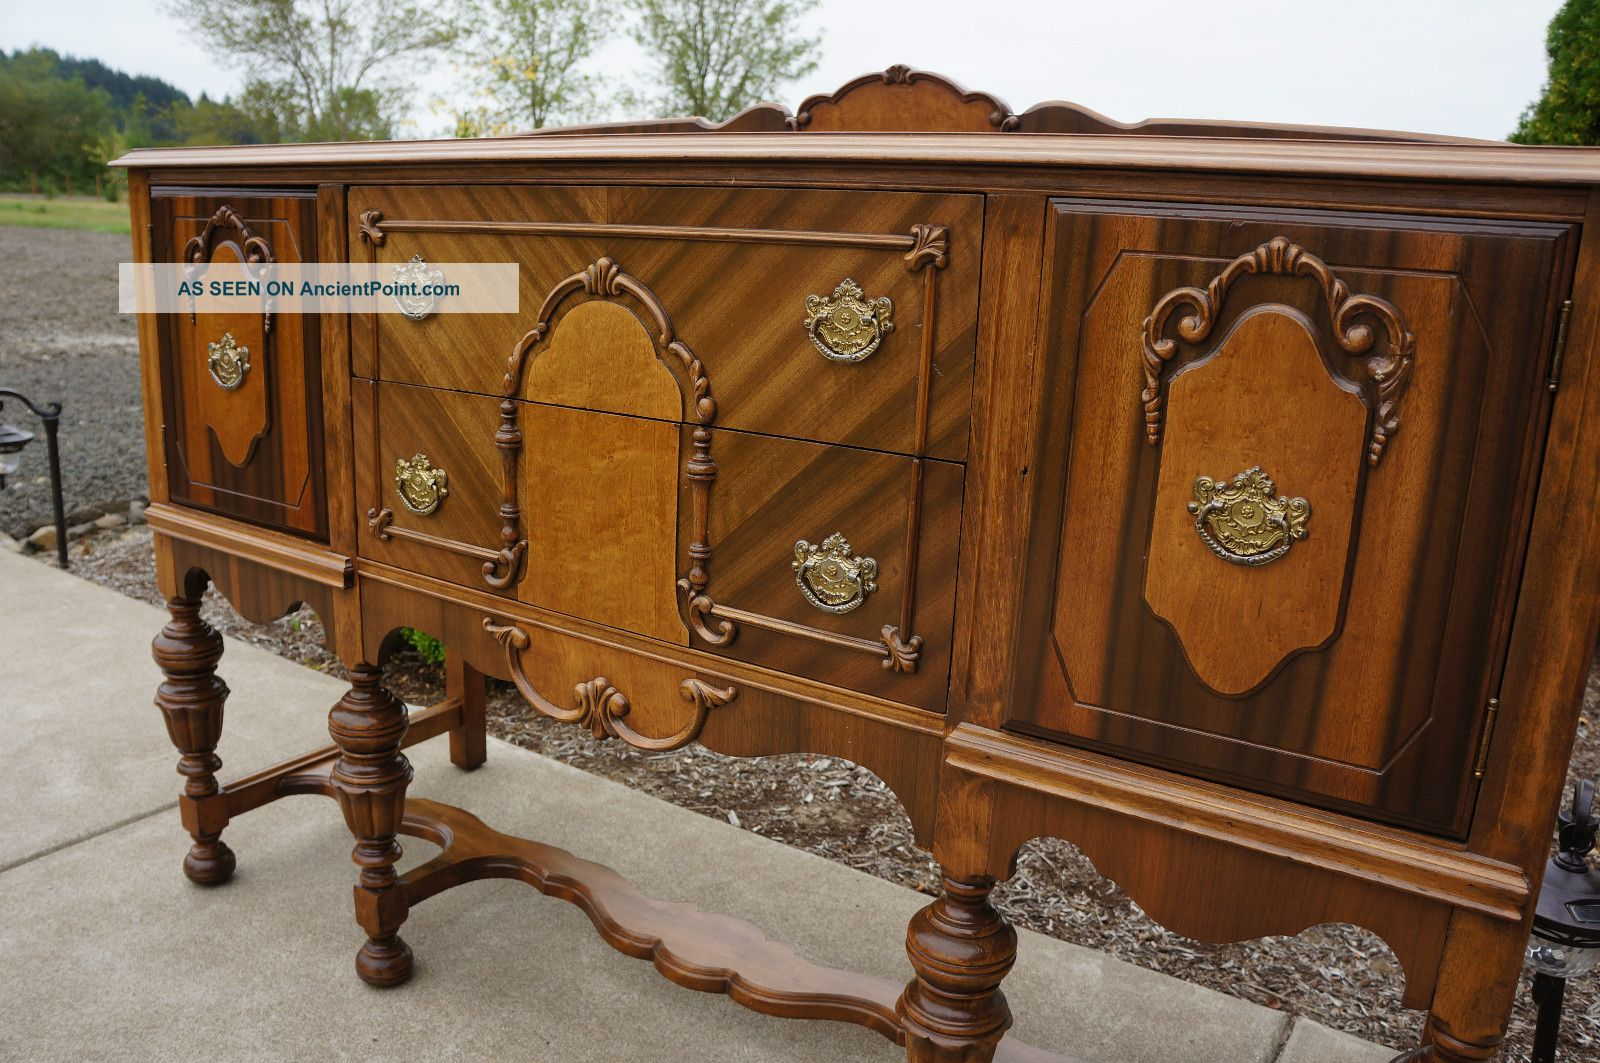 78581 Magnificent Antique Buffet Vintage Server Sideboard Buffet